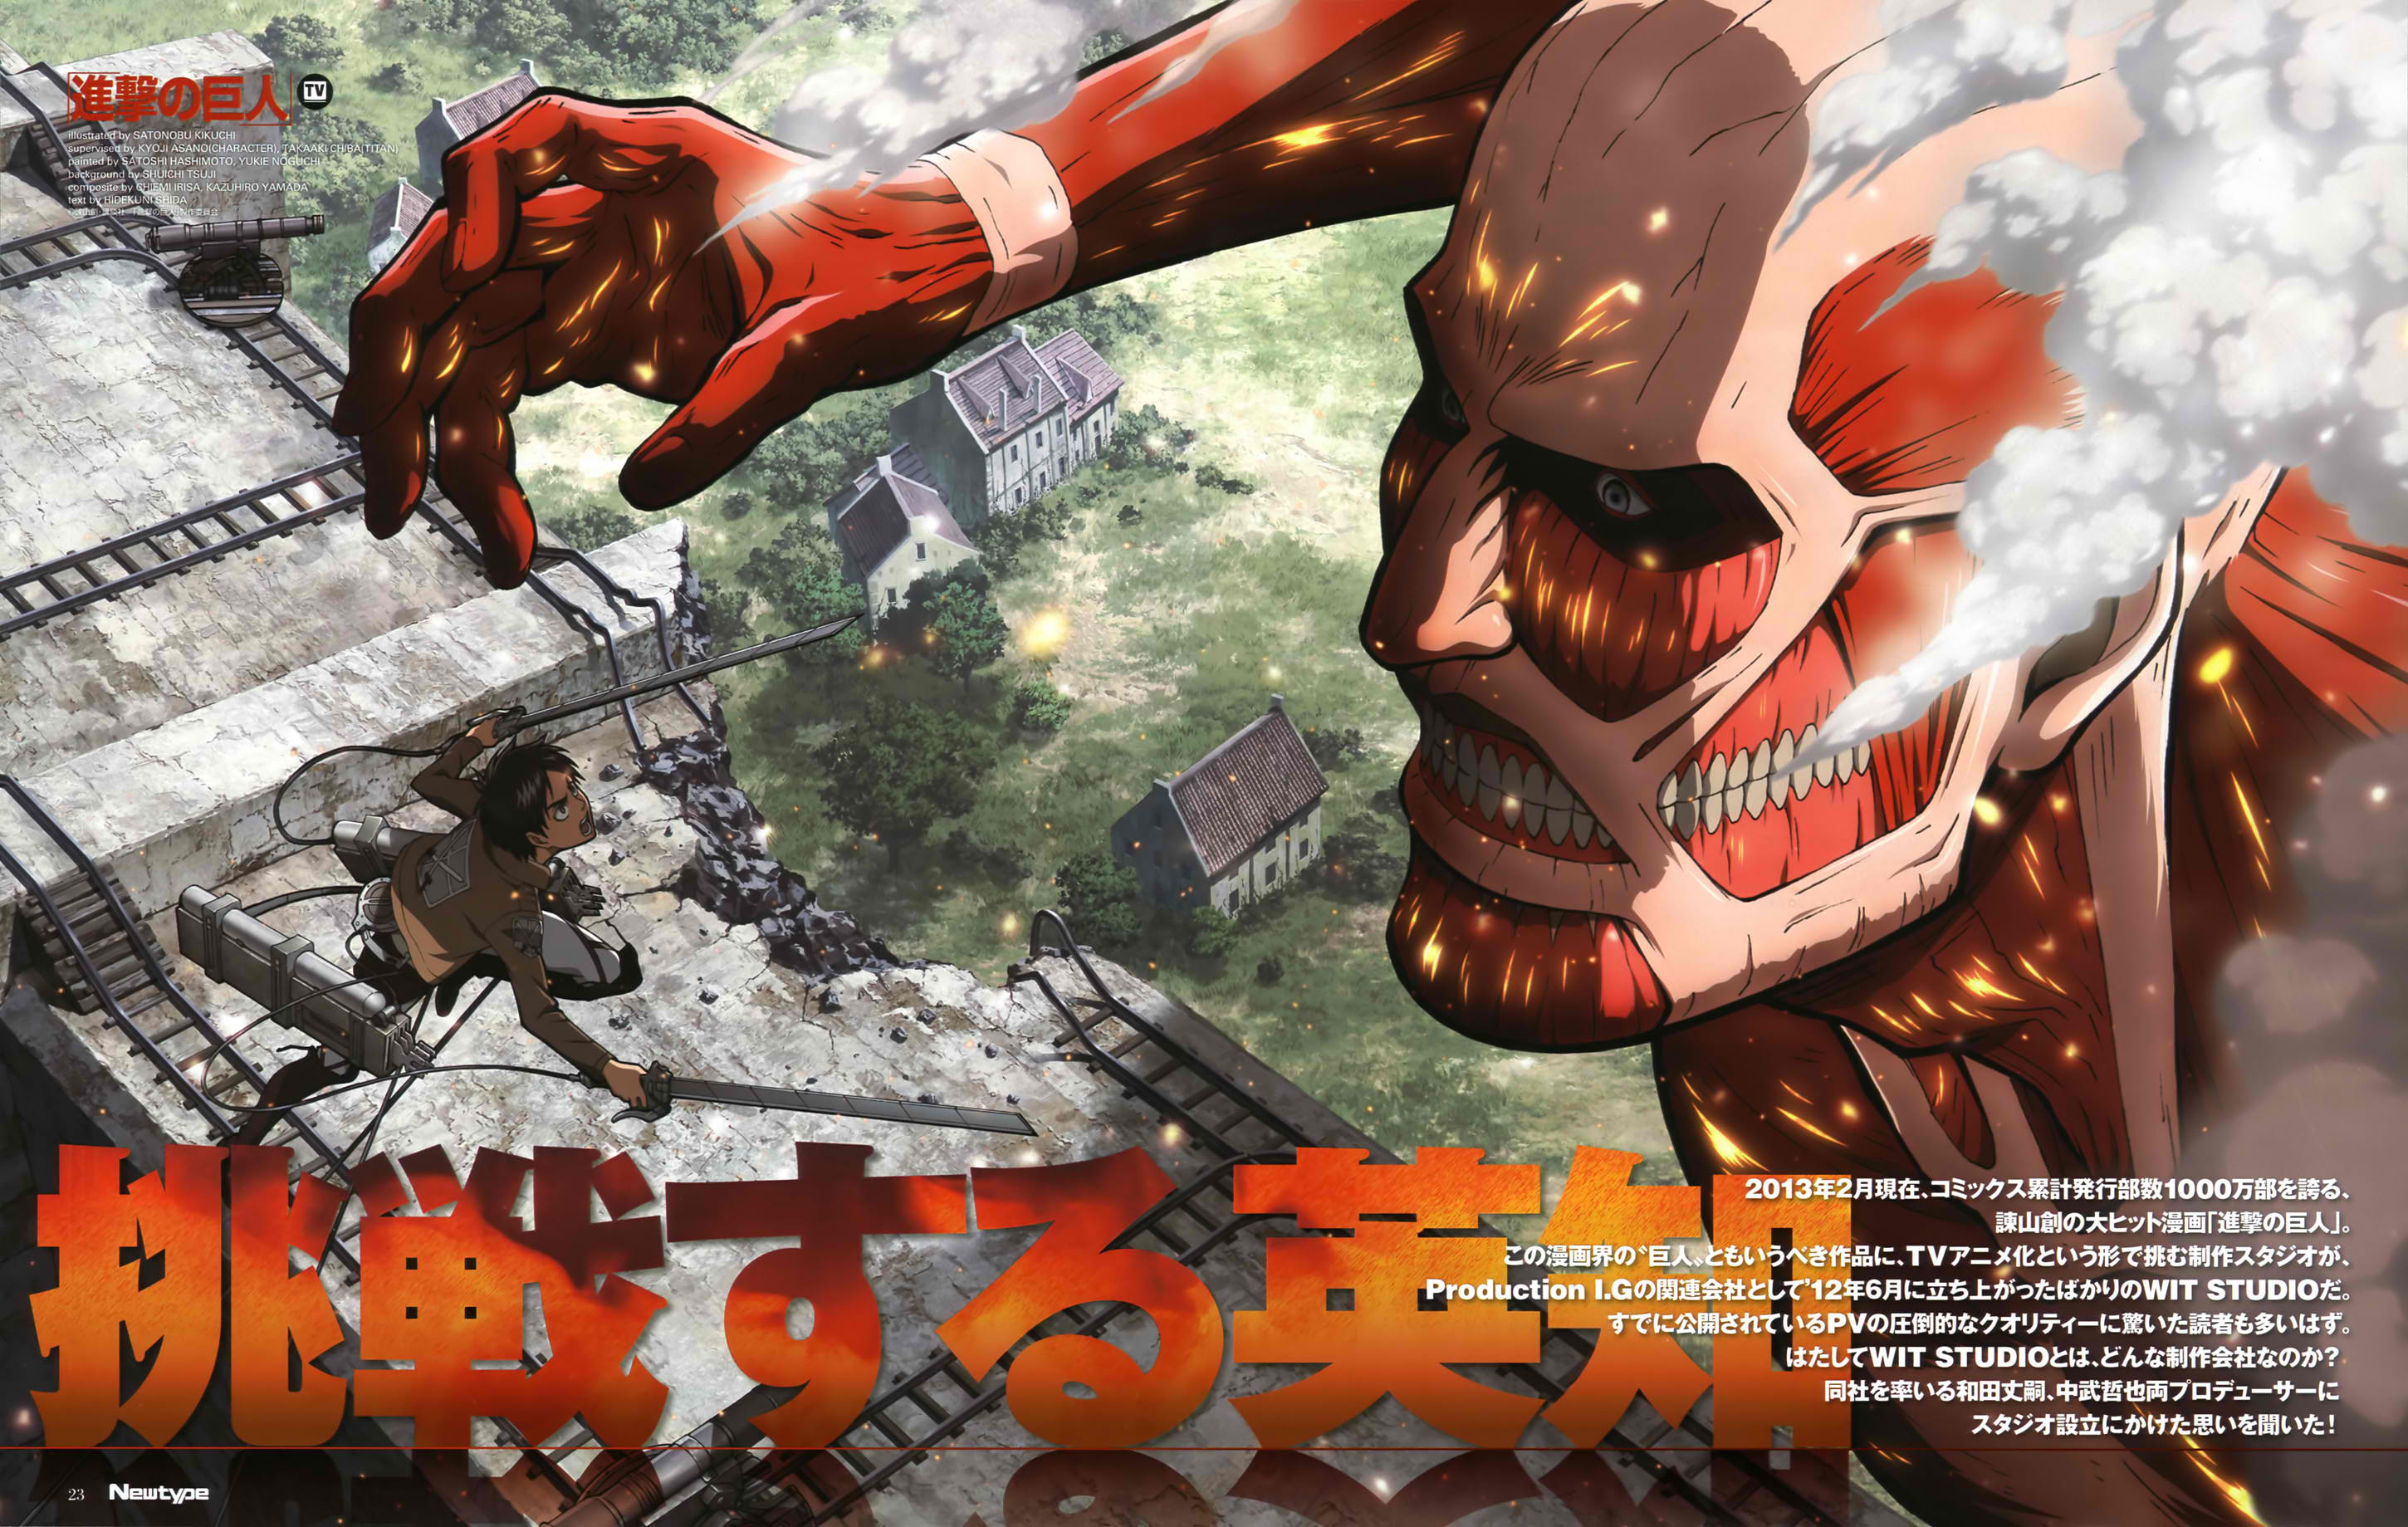 shingeki no kyojin featured